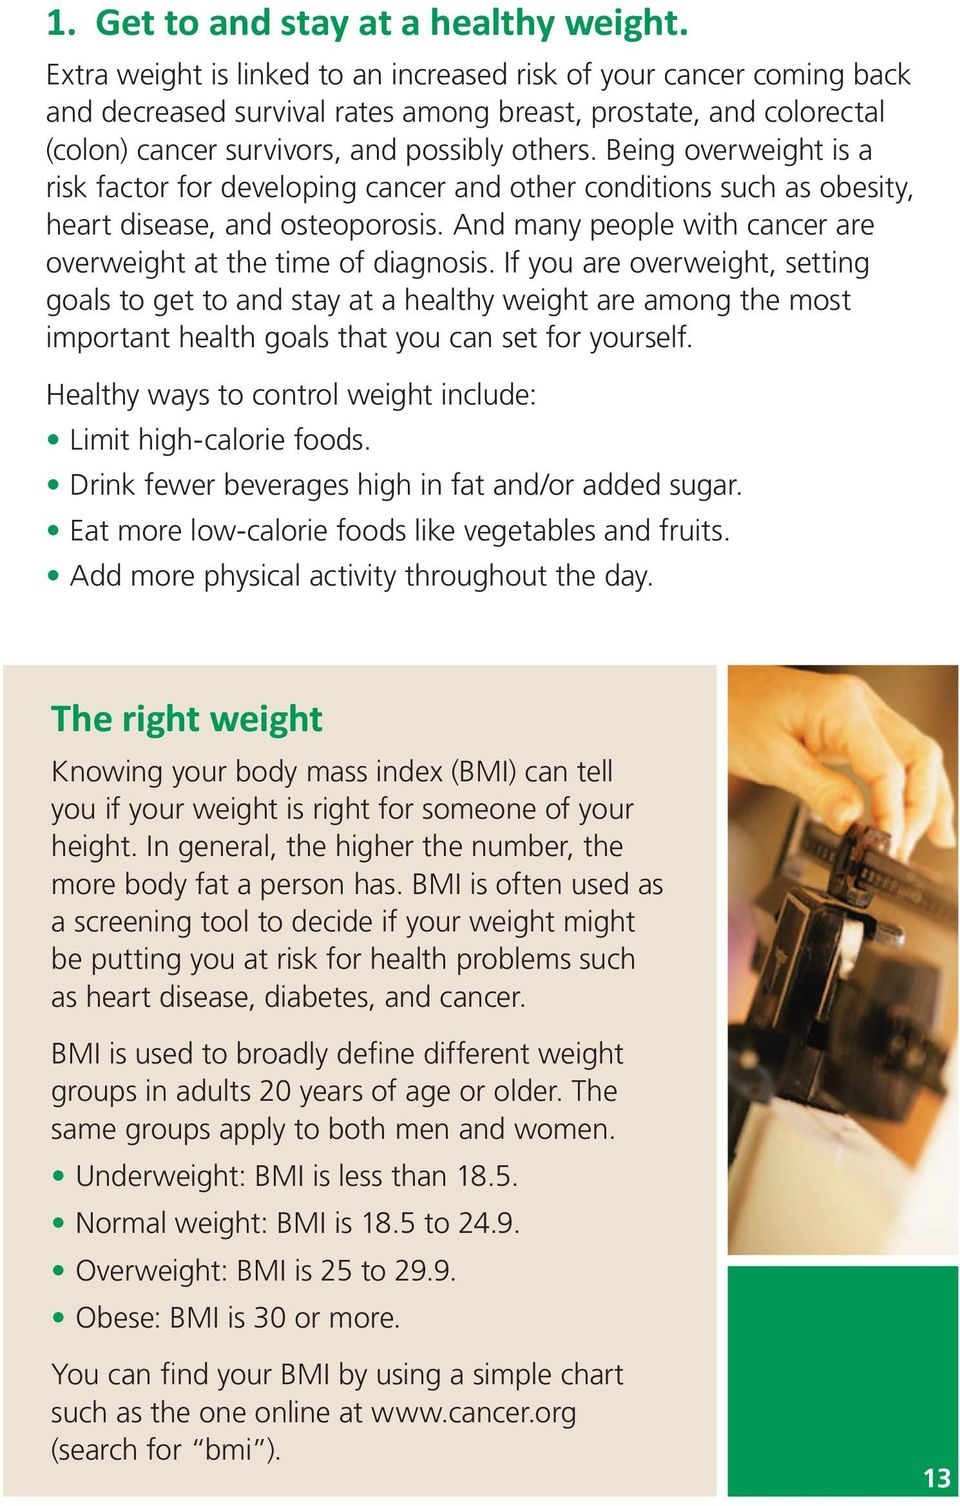 Being overweight is a risk factor for developing cancer and other conditions such as obesity, heart disease, and osteoporosis. And many people with cancer are overweight at the time of diagnosis.